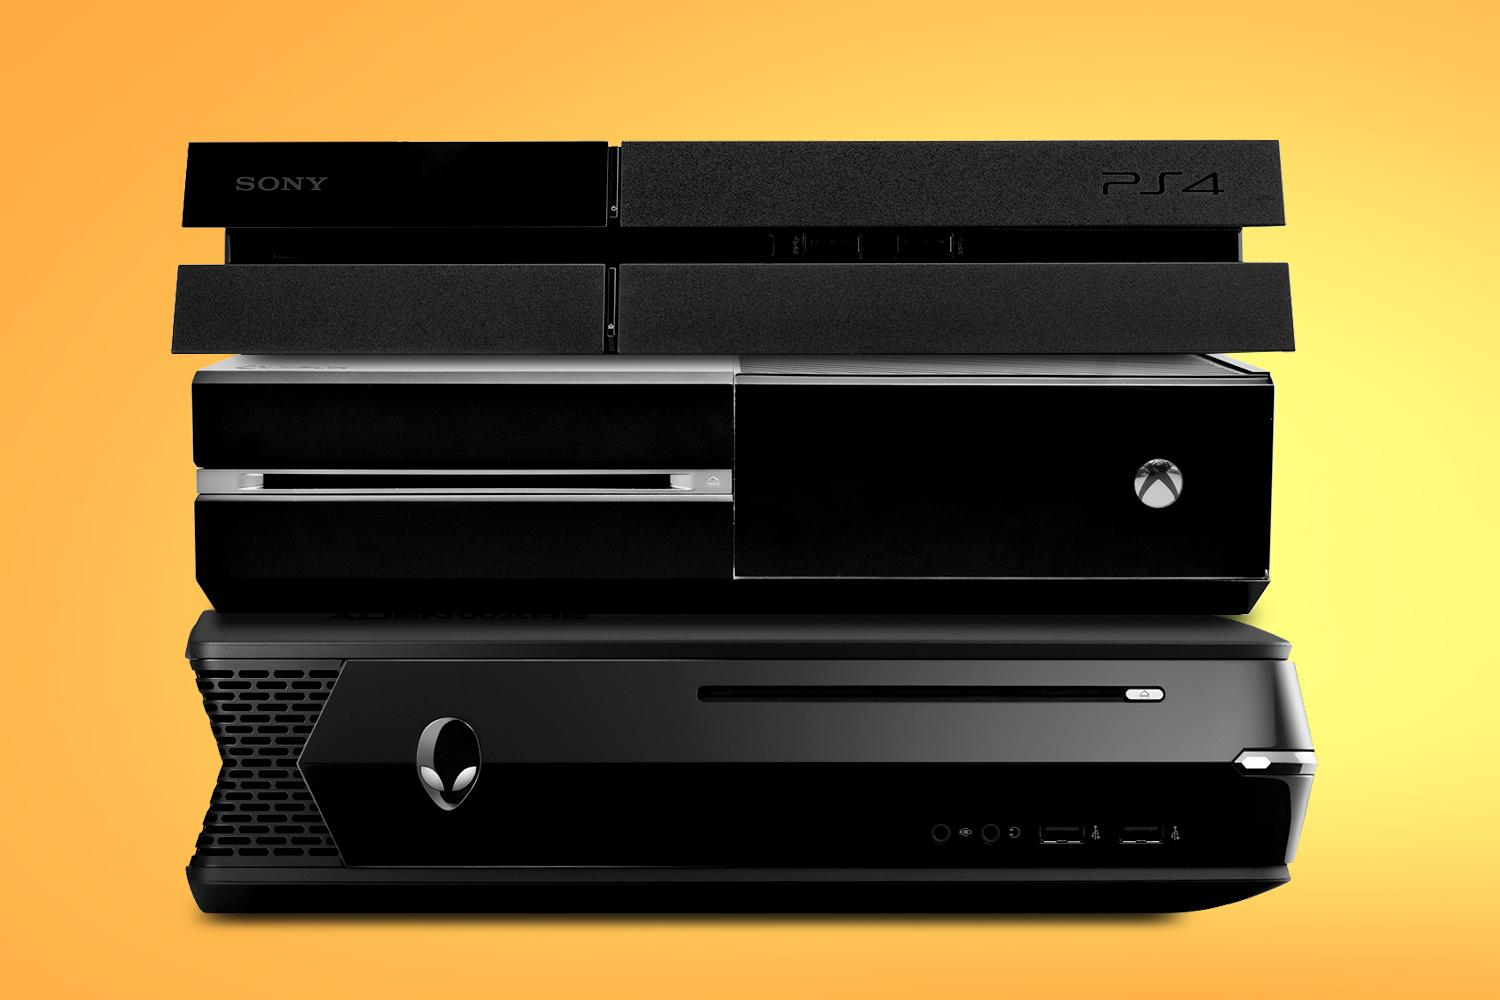 Essay about why Xbox one X is better